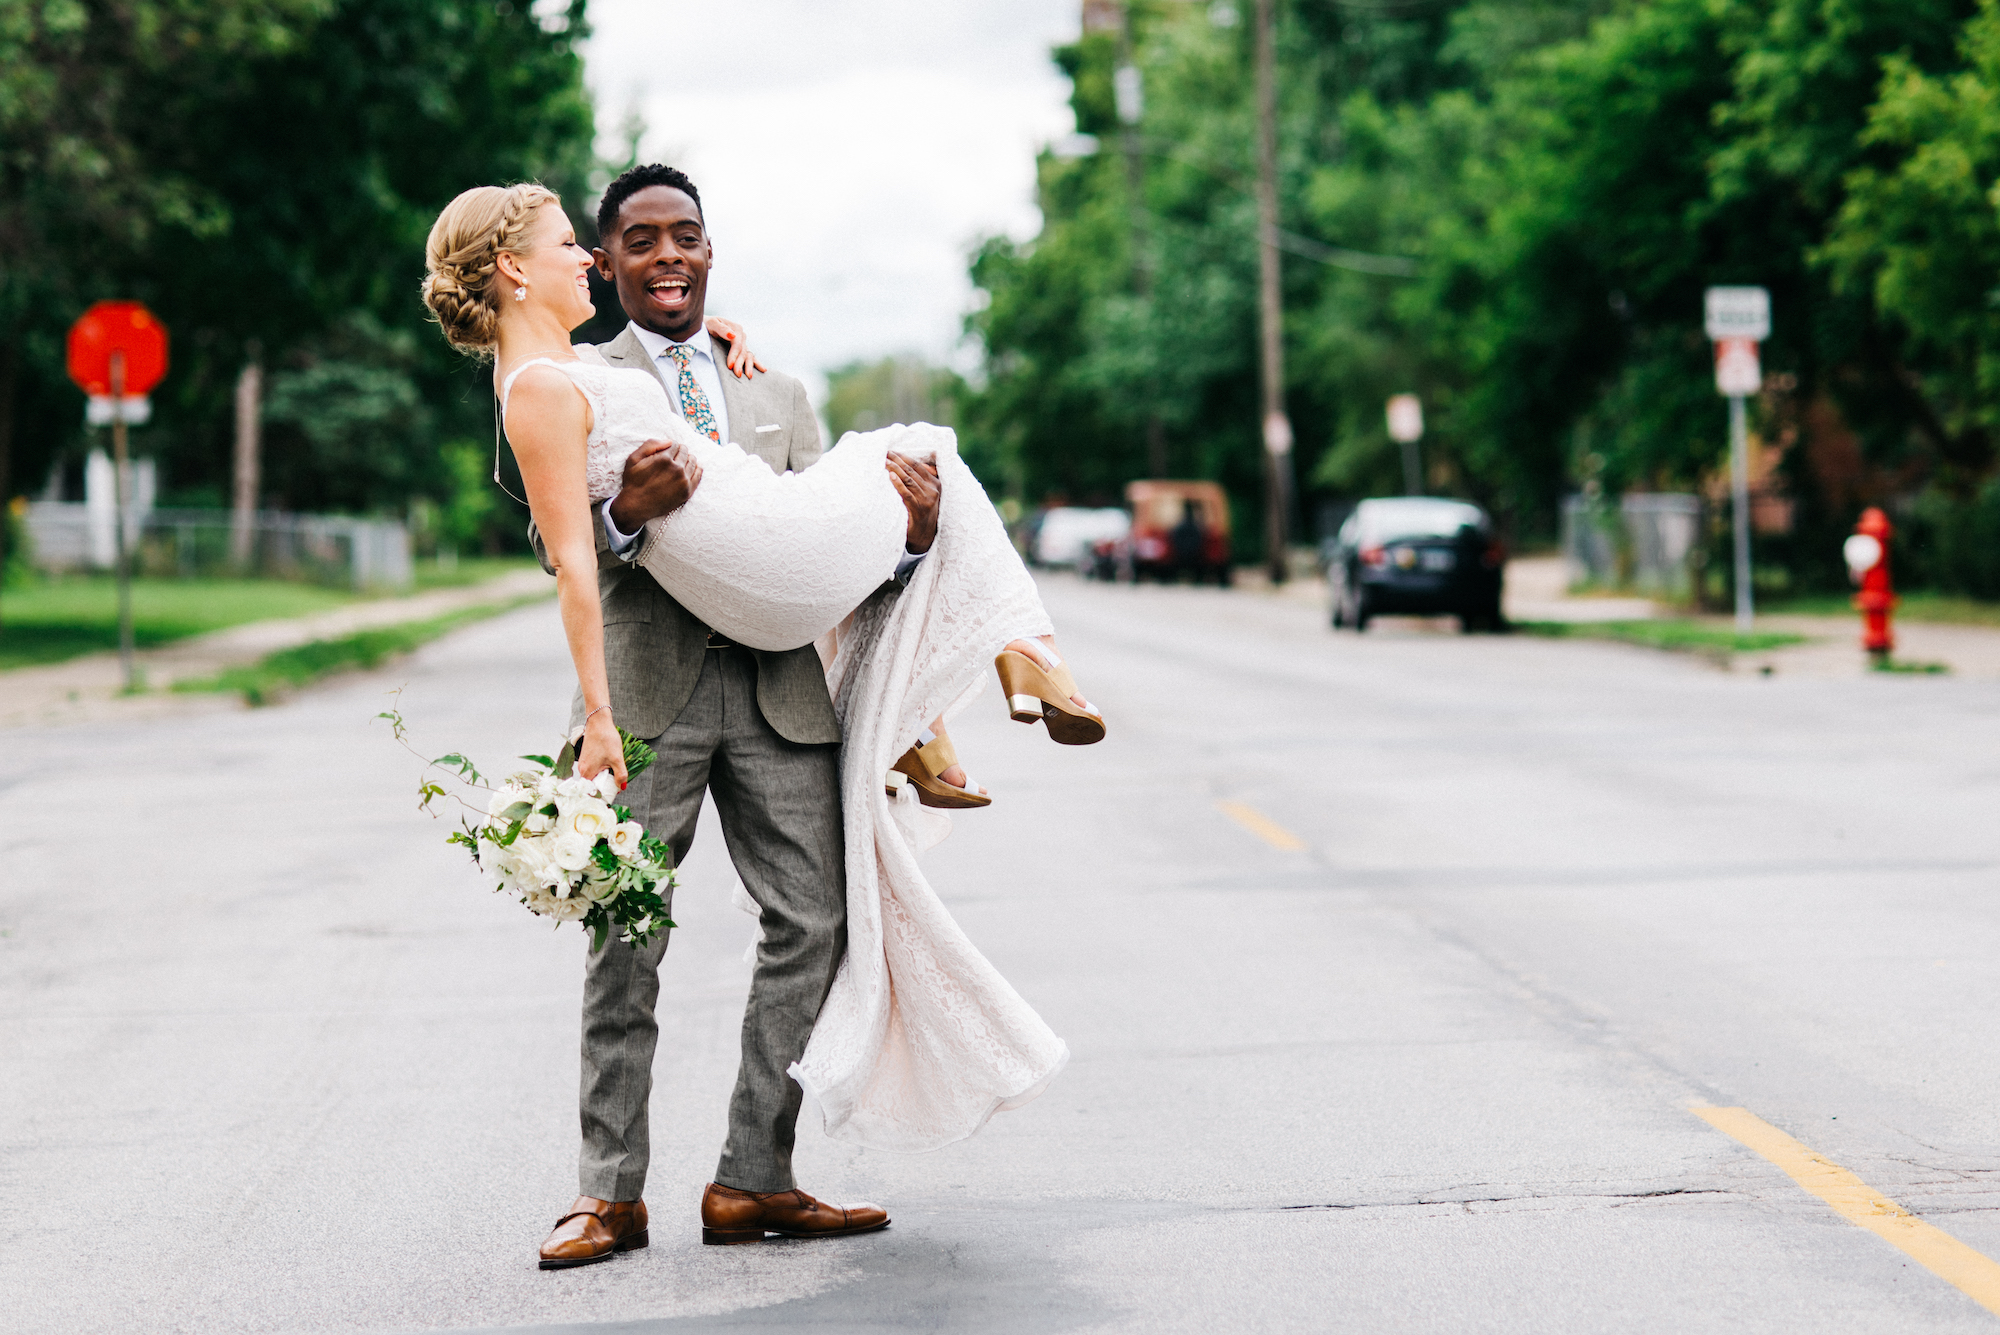 Roy Son Photography | Acowsay Minnesota Wedding Videographer | Sixpence Standard blog post on being a Power Couple